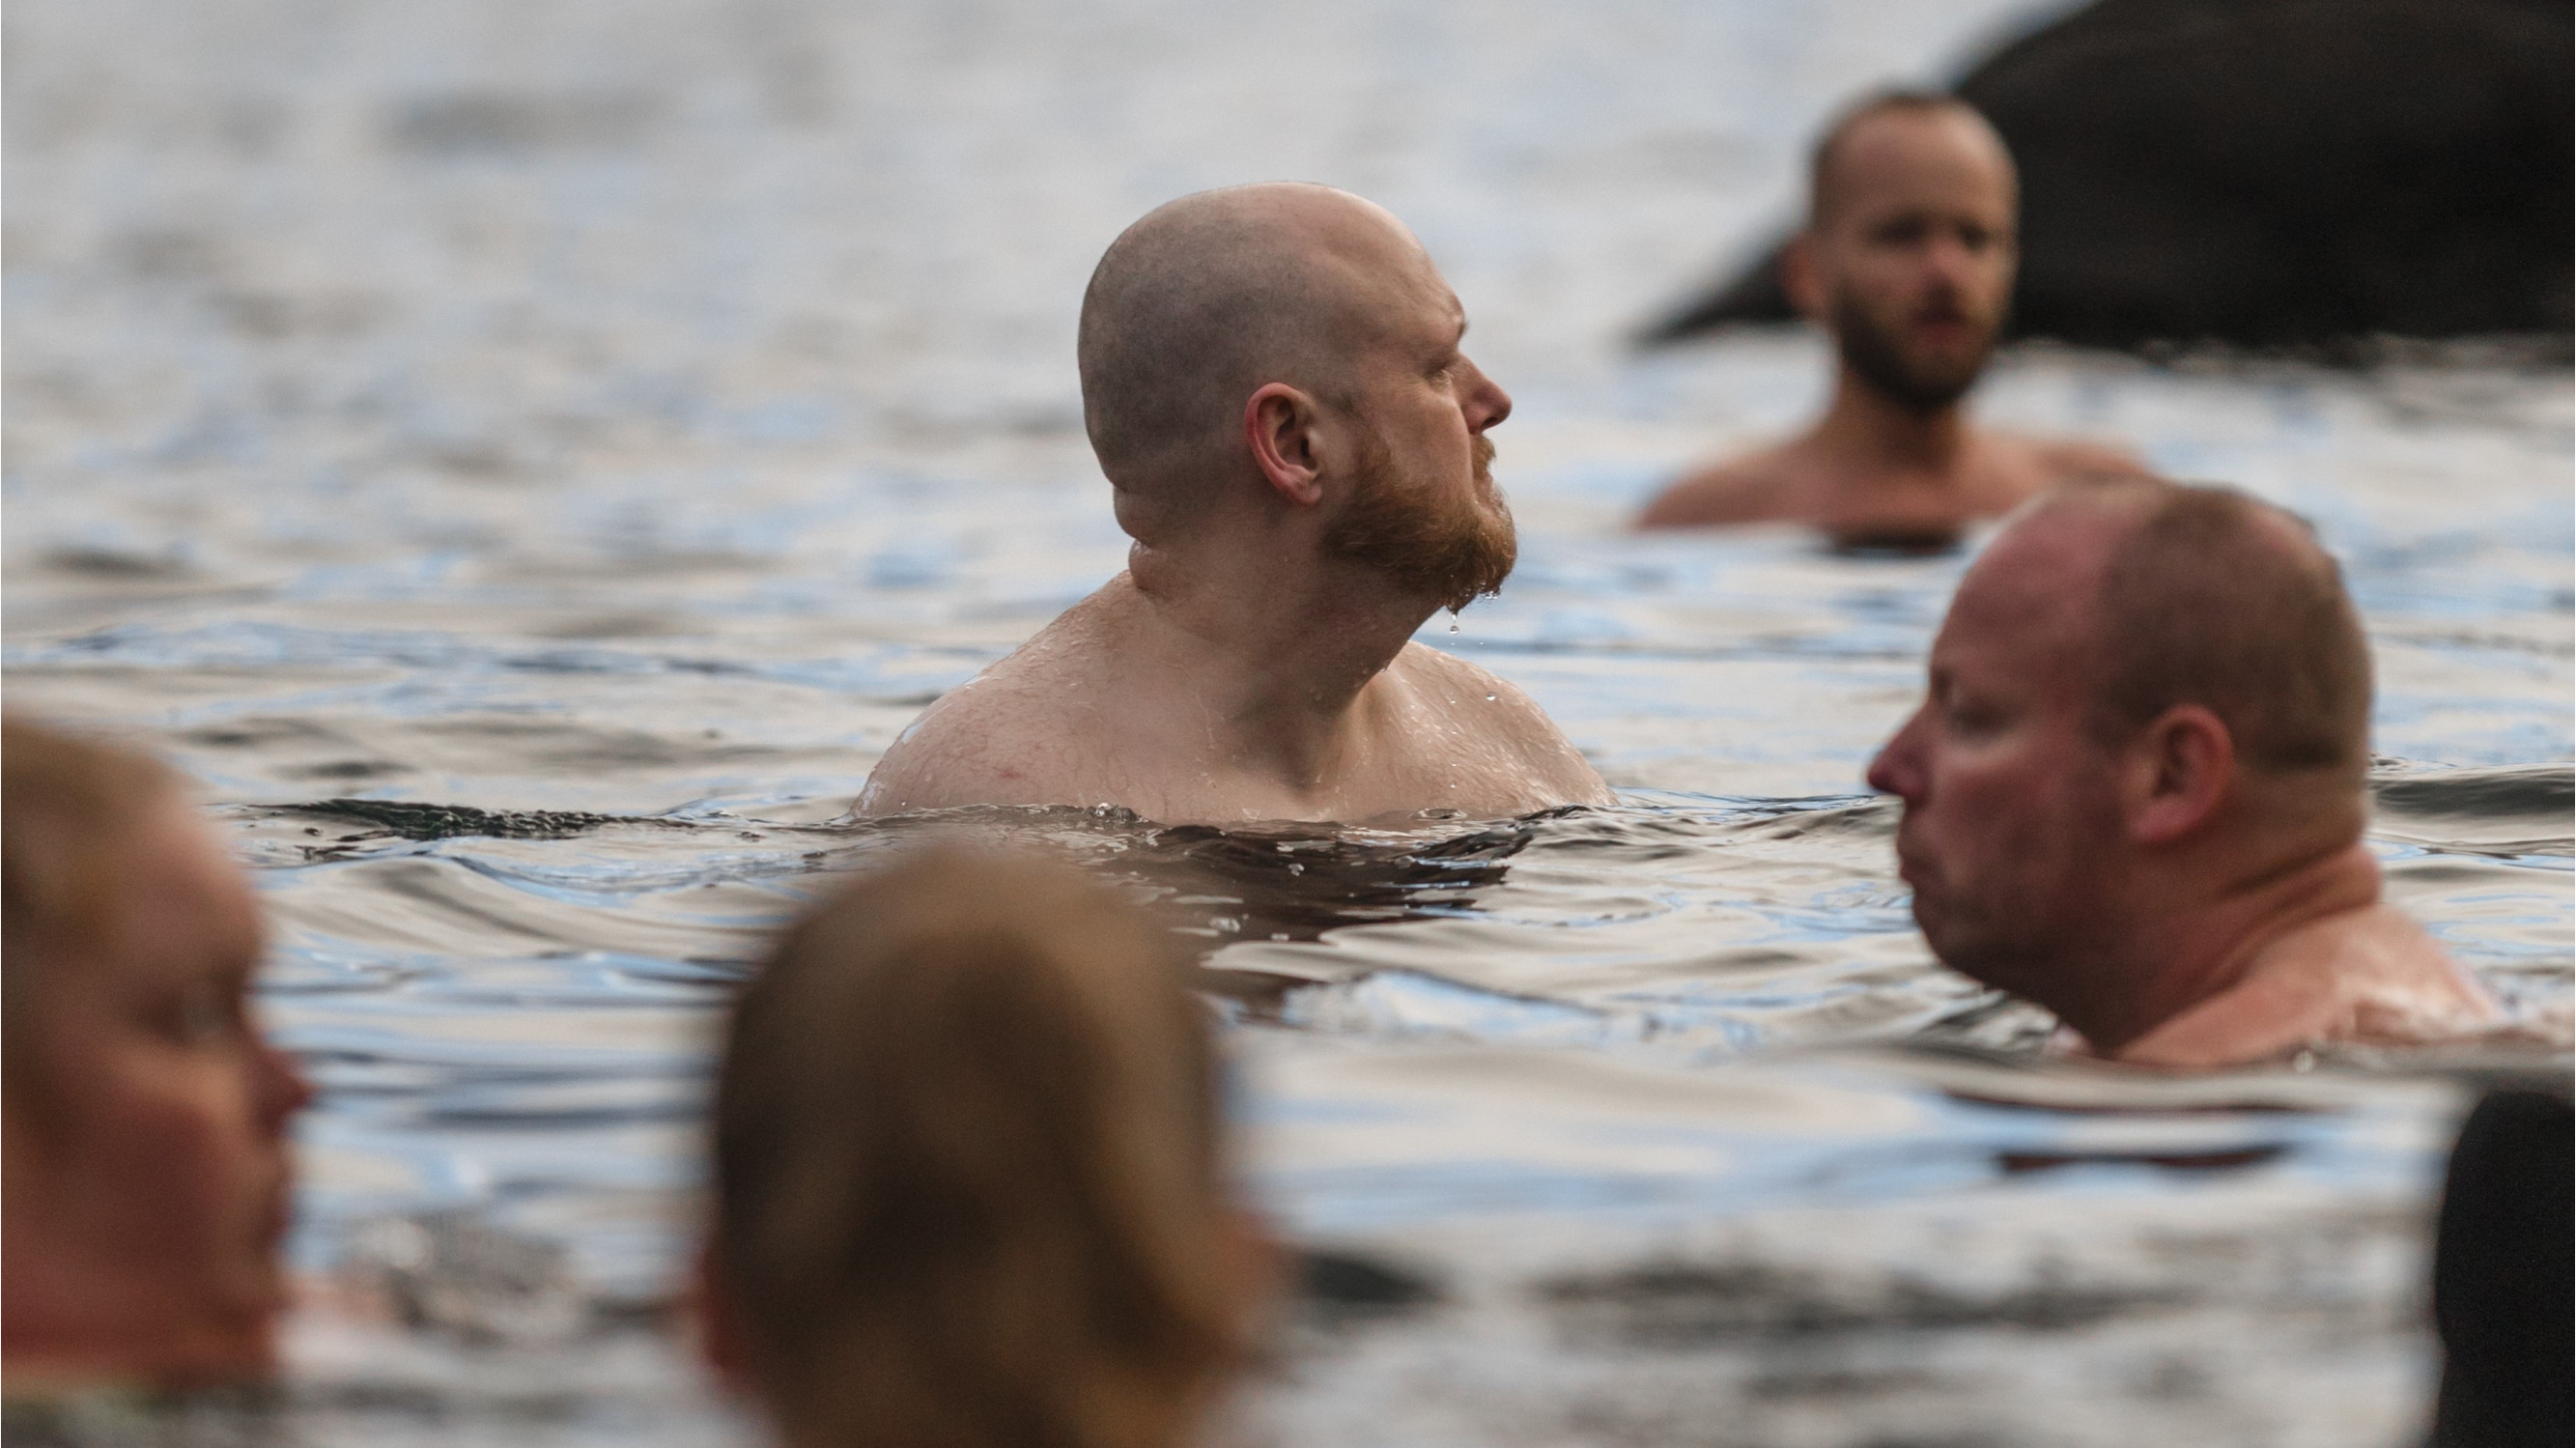 Image 3 of 14 - Experience the Wim Hof Method to get an impression of  at